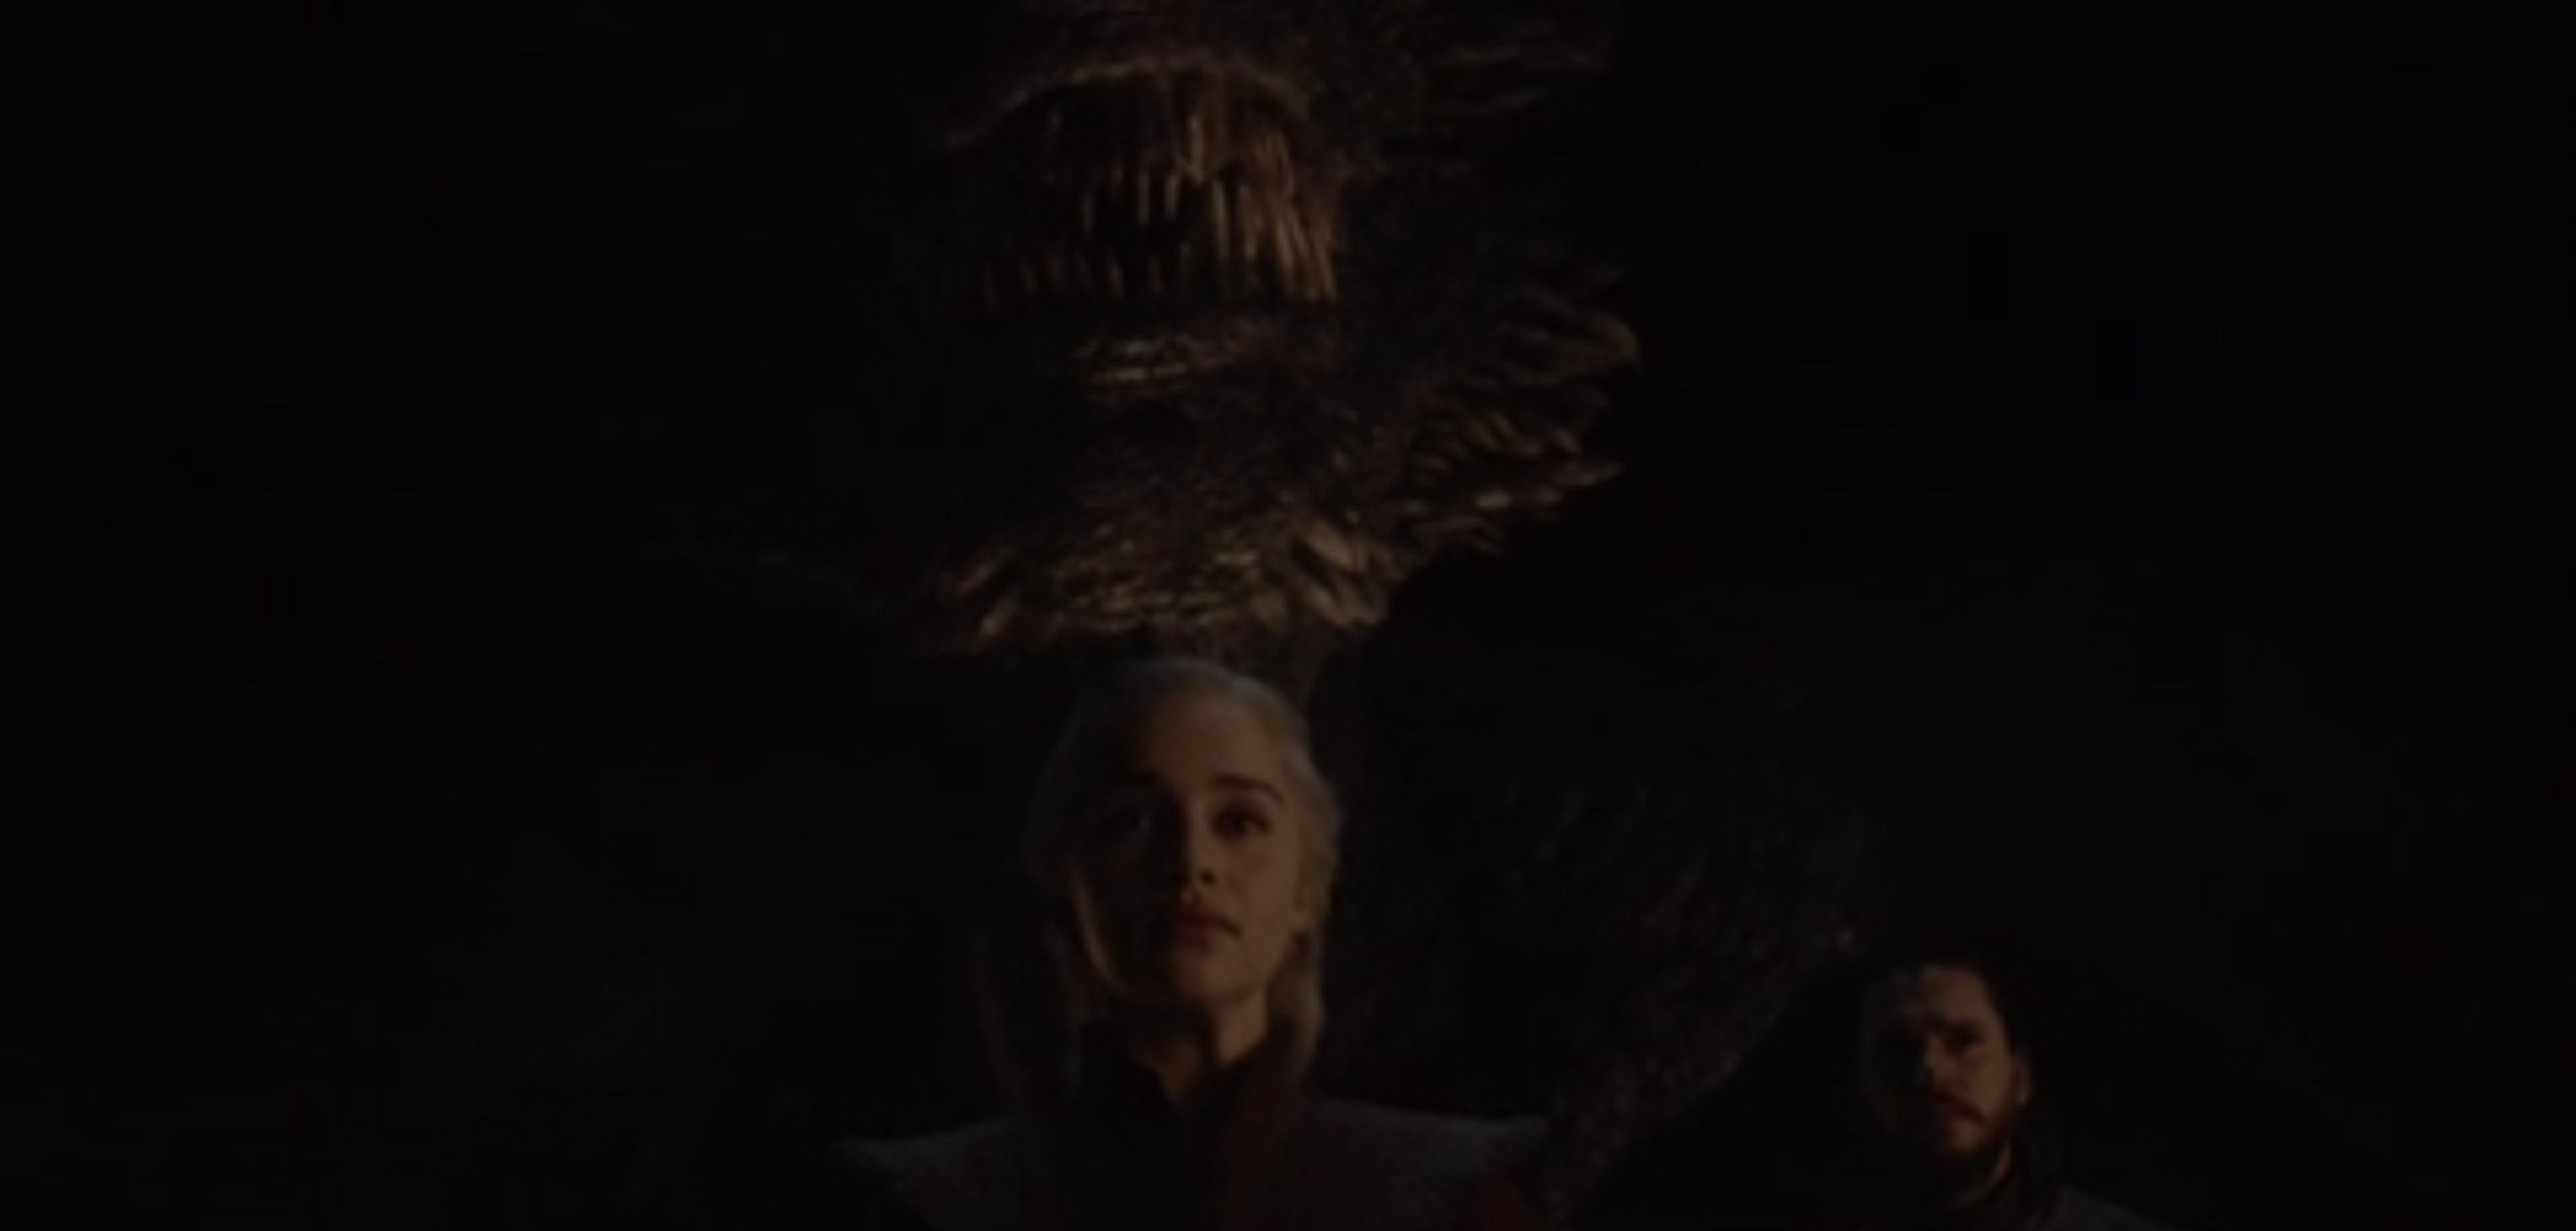 Game of Thrones daenerys dragon varys